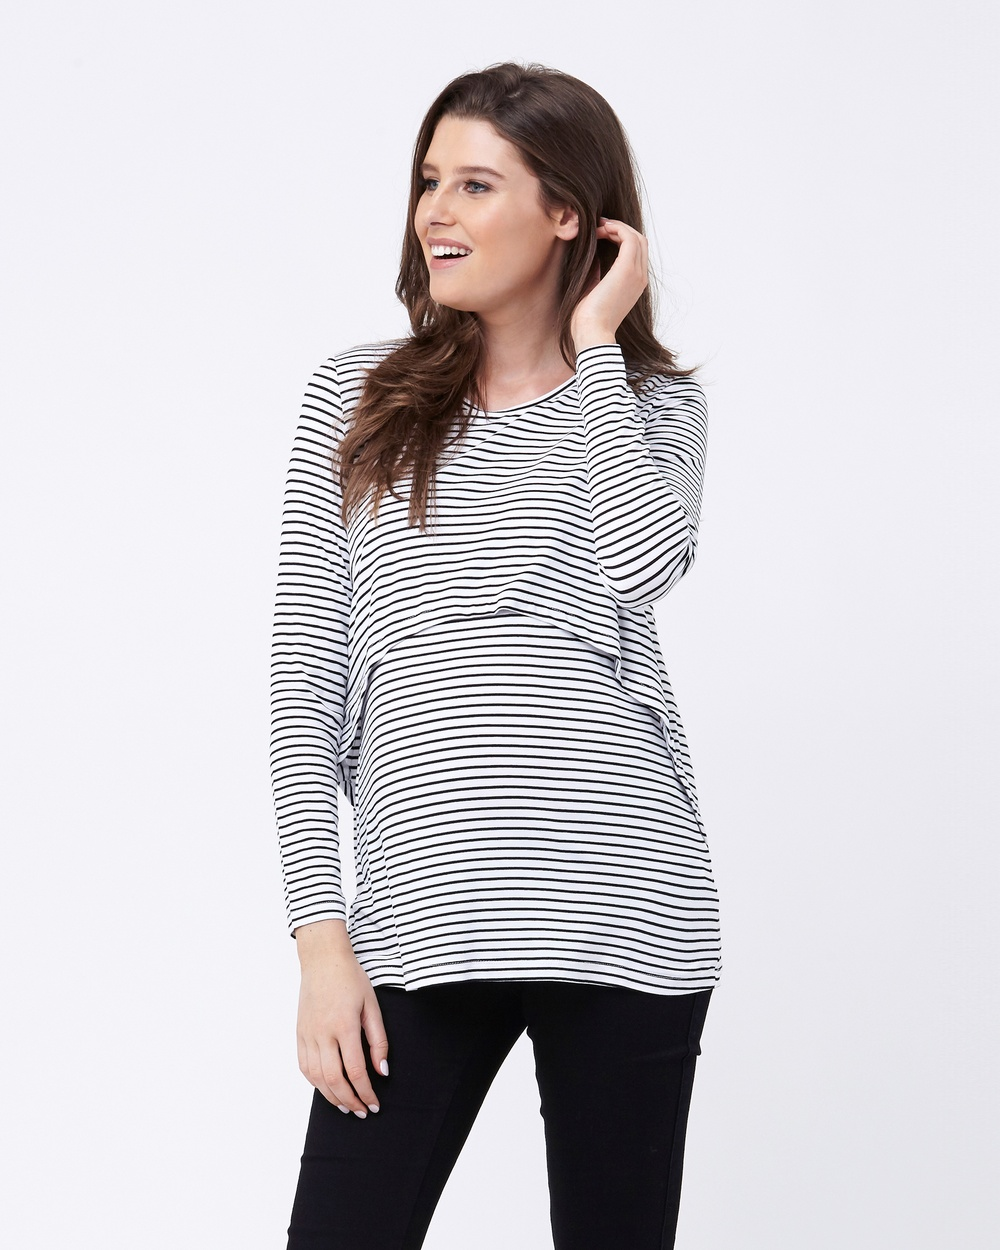 Ripe Maternity Swing Back Stripe Nursing Top Tops Black/White Swing Back Stripe Nursing Top